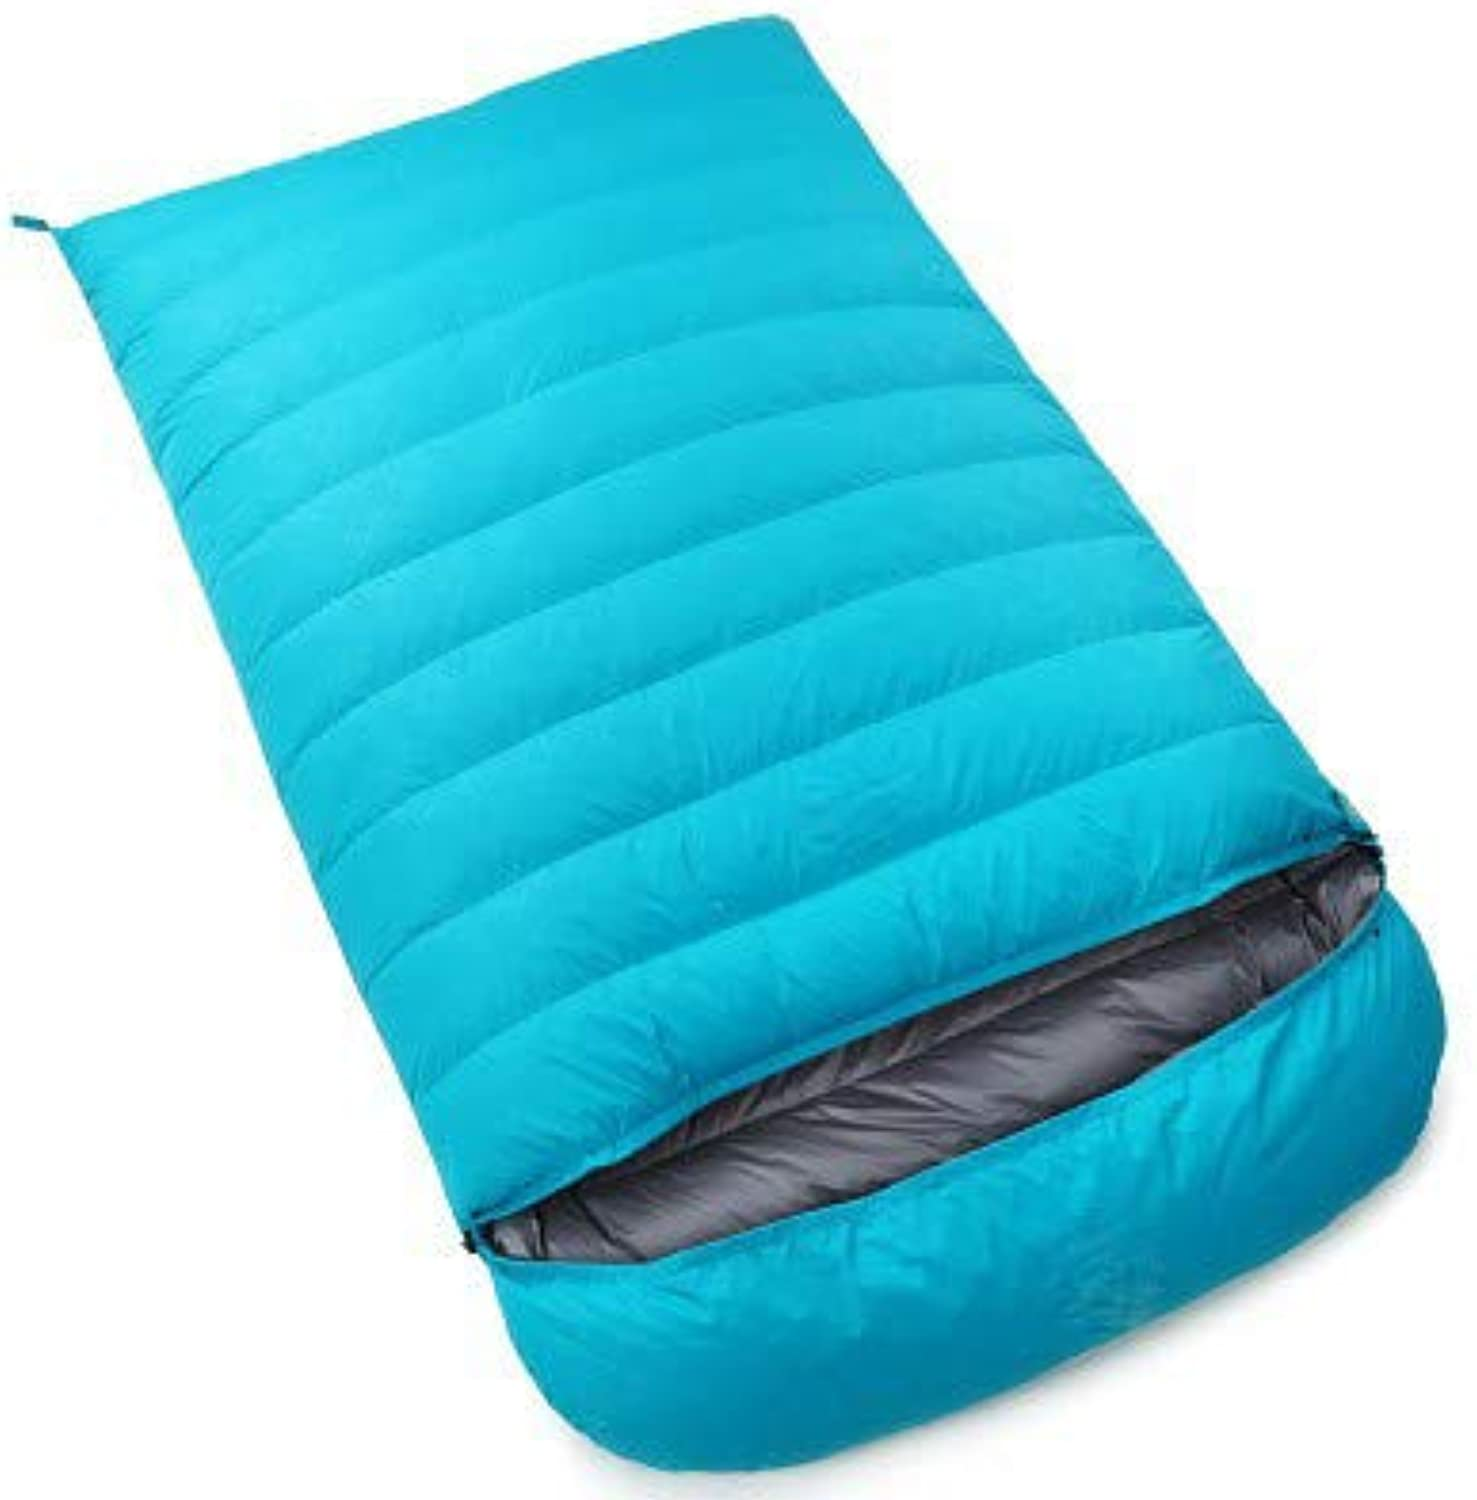 1200g Velvet Outdoor Adult Camping Down Sleeping Bag Four Seasons Mountaineering Envelope Type Double Couple Ultra Light Down Sleeping Bag Warm